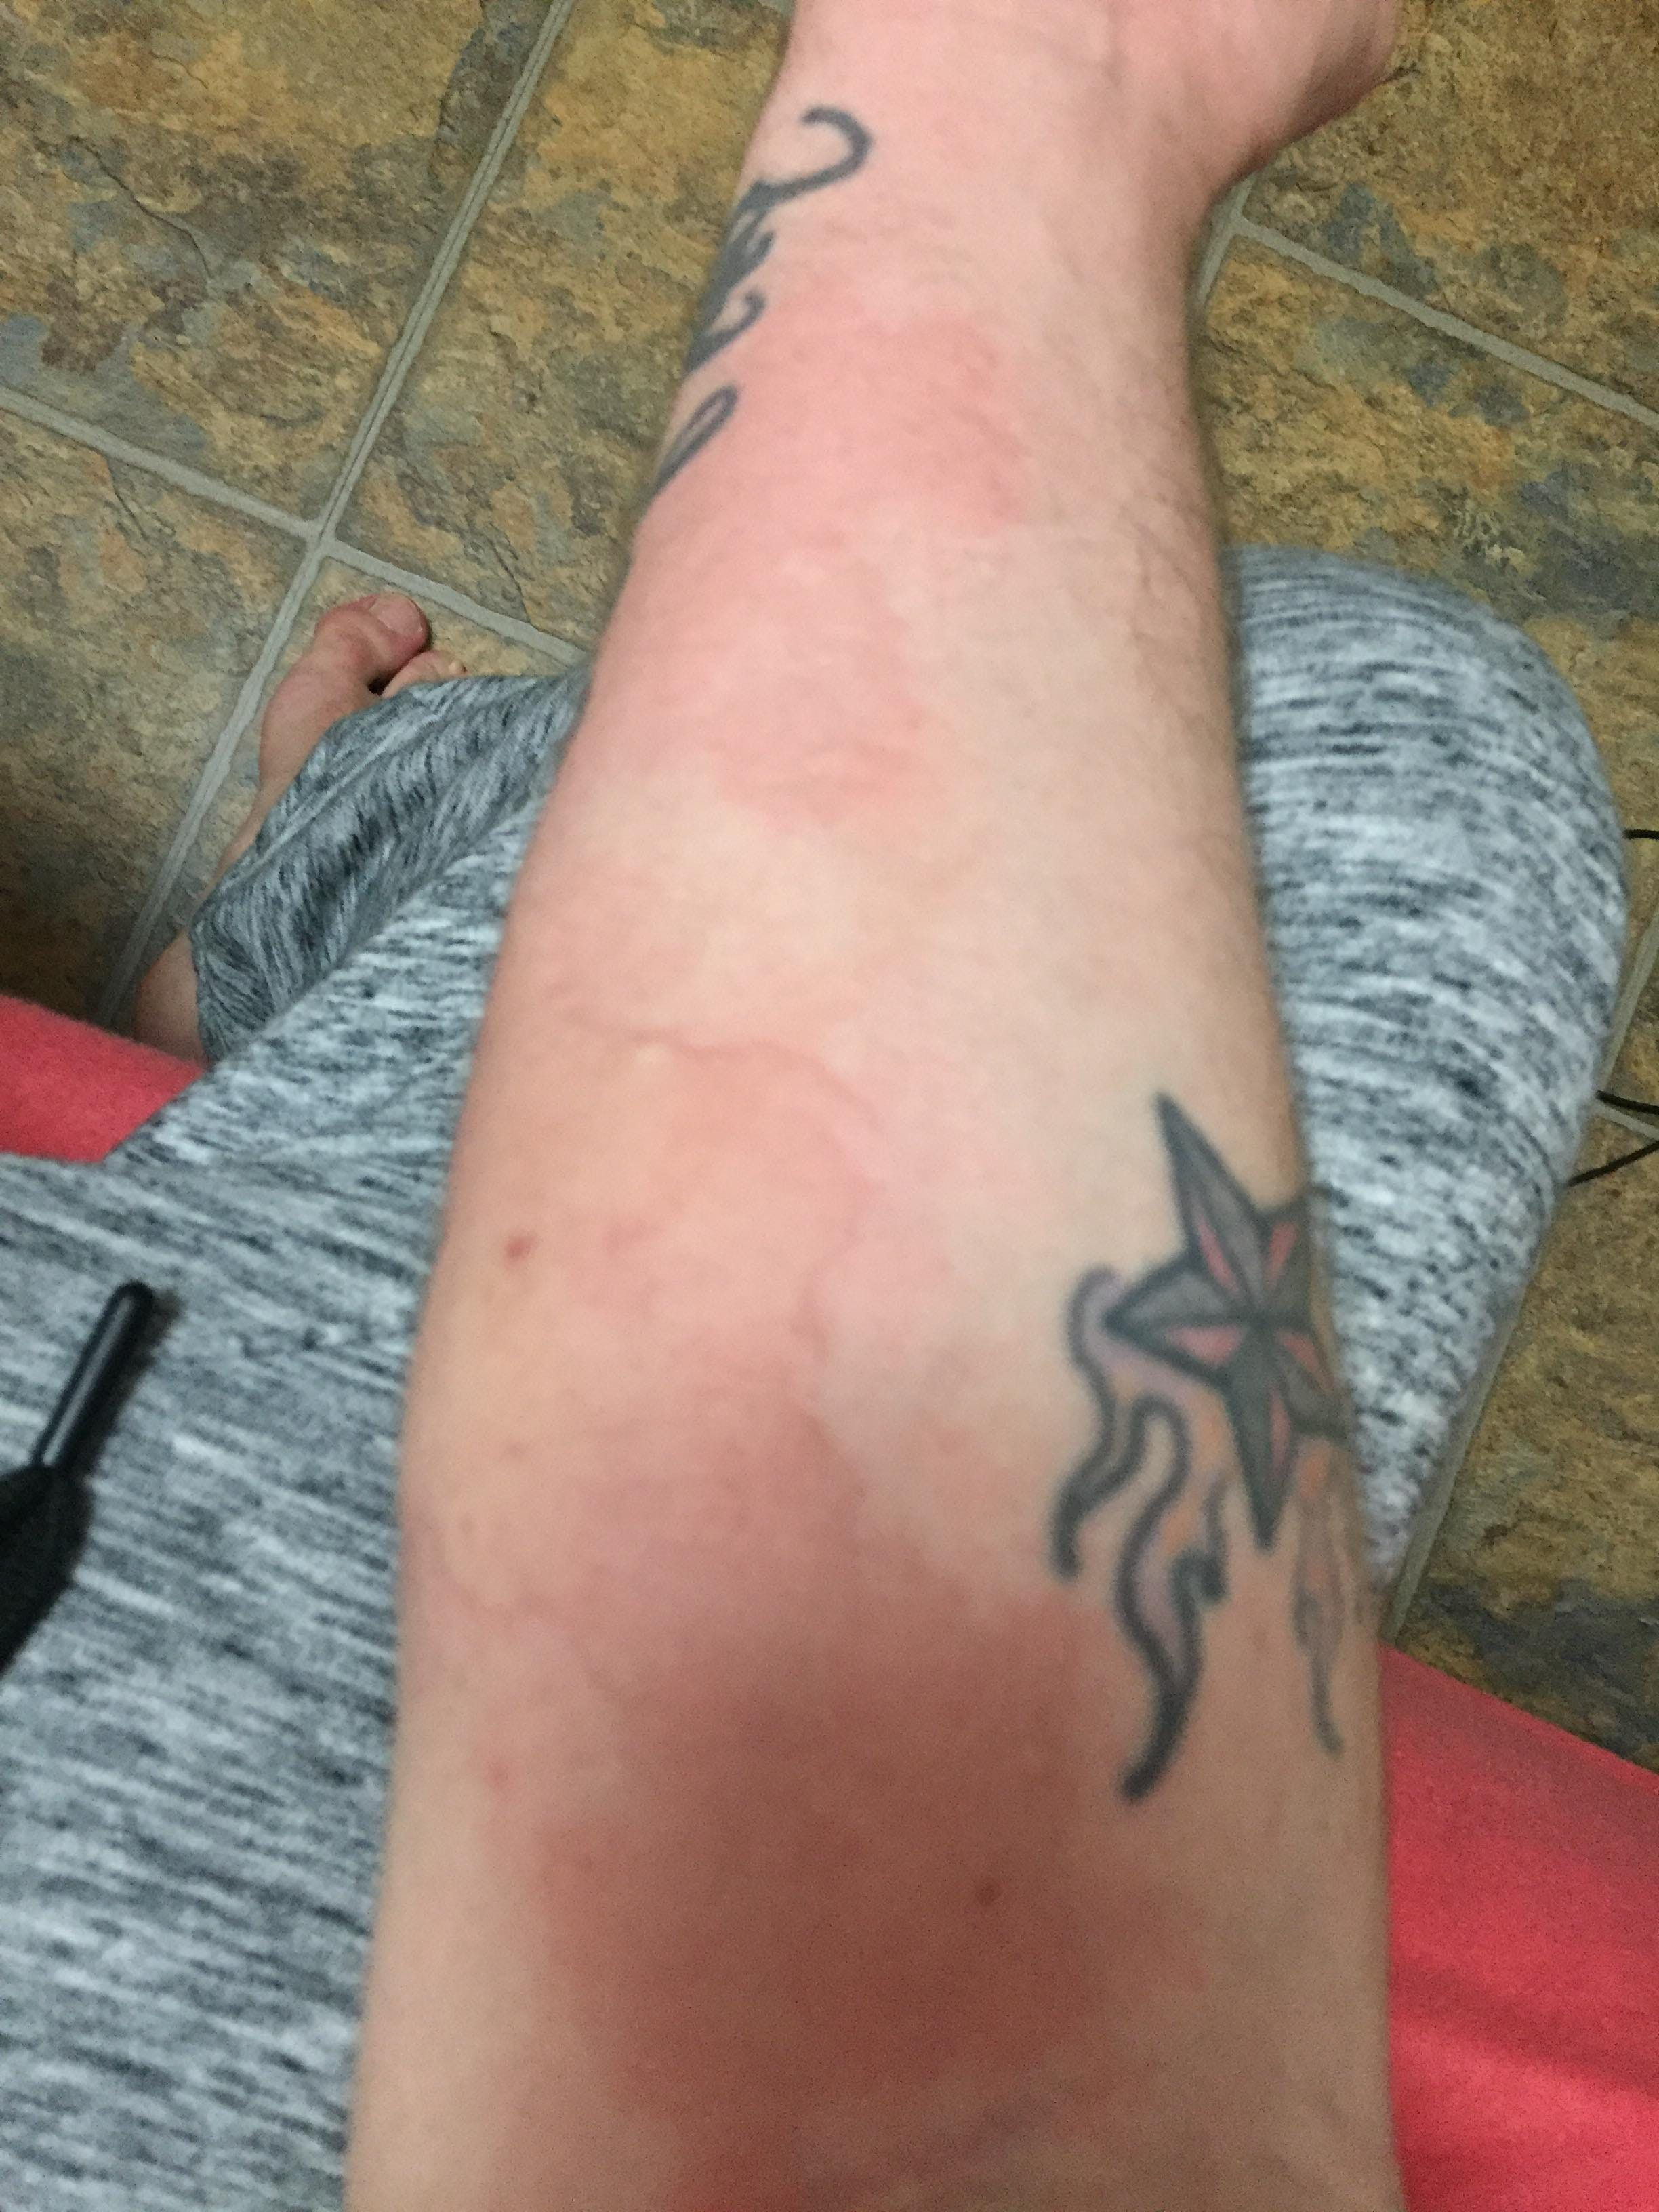 A rash that resulted from injecting meth.